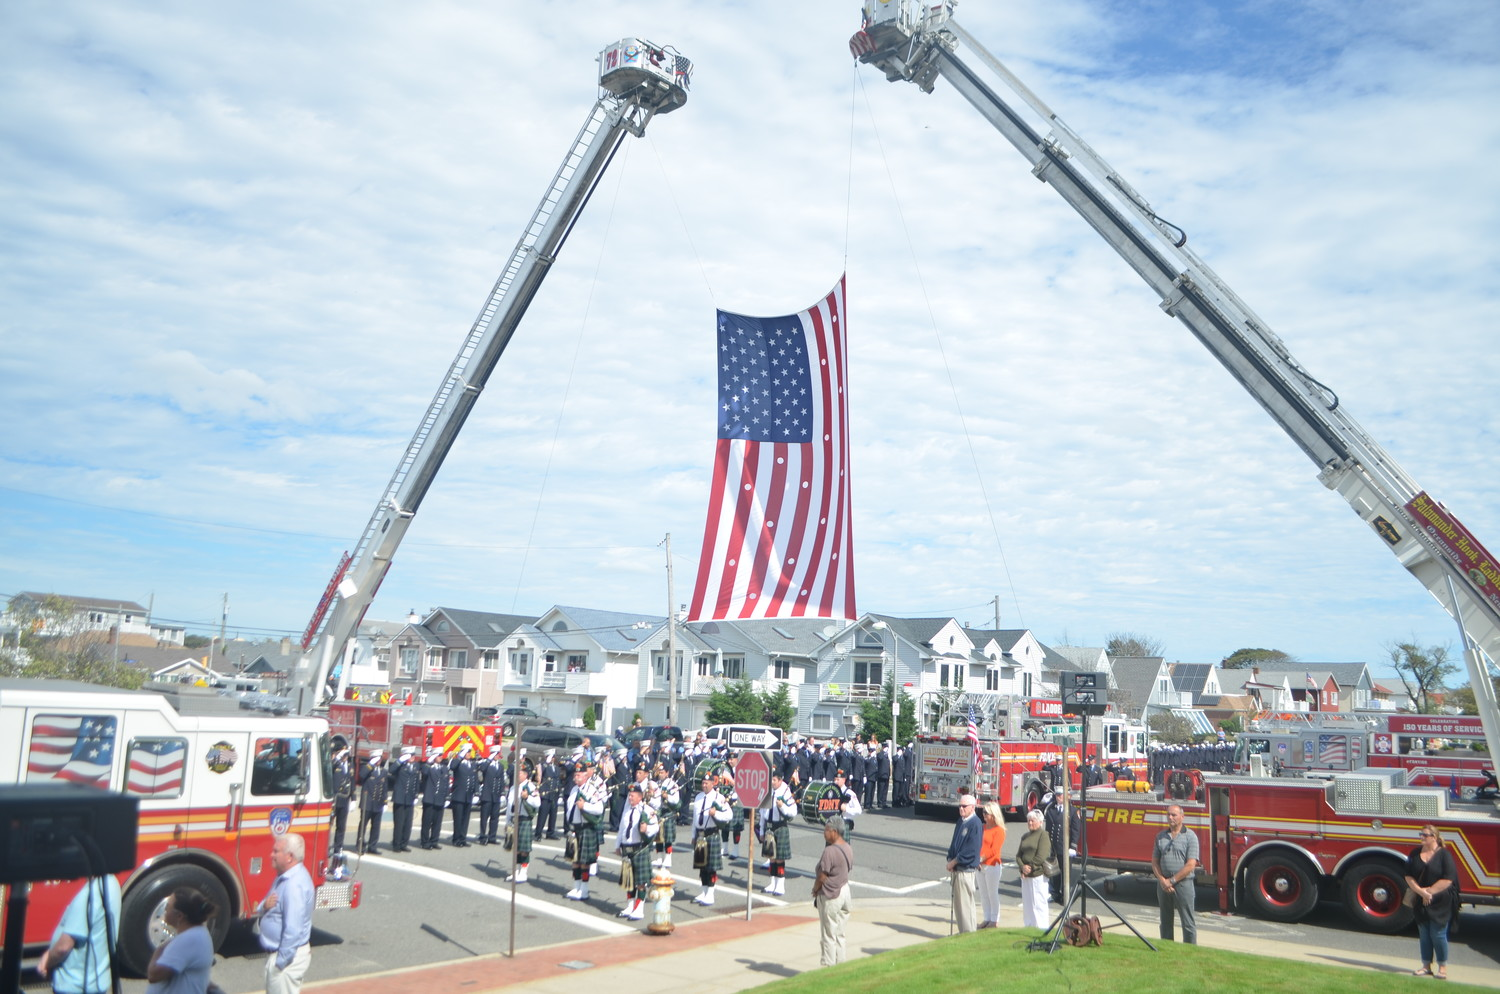 Hundreds of people, including FDNY and local firefighters, lined West Penn Street to honor Elges at his funeral at St. Ignatius Martyr Church last Saturday.